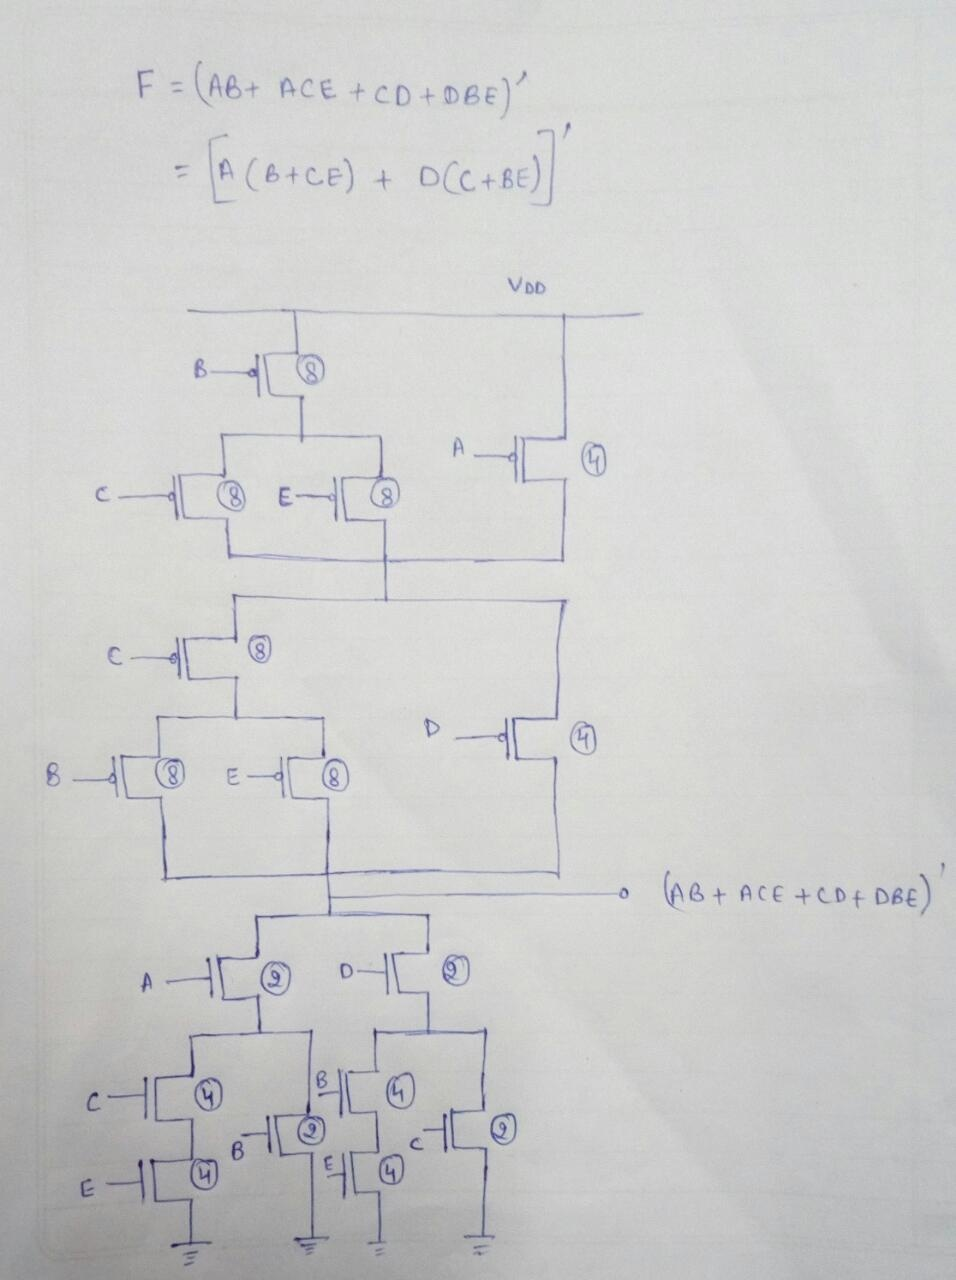 medium resolution of for 16 transistor following circuit can be considered